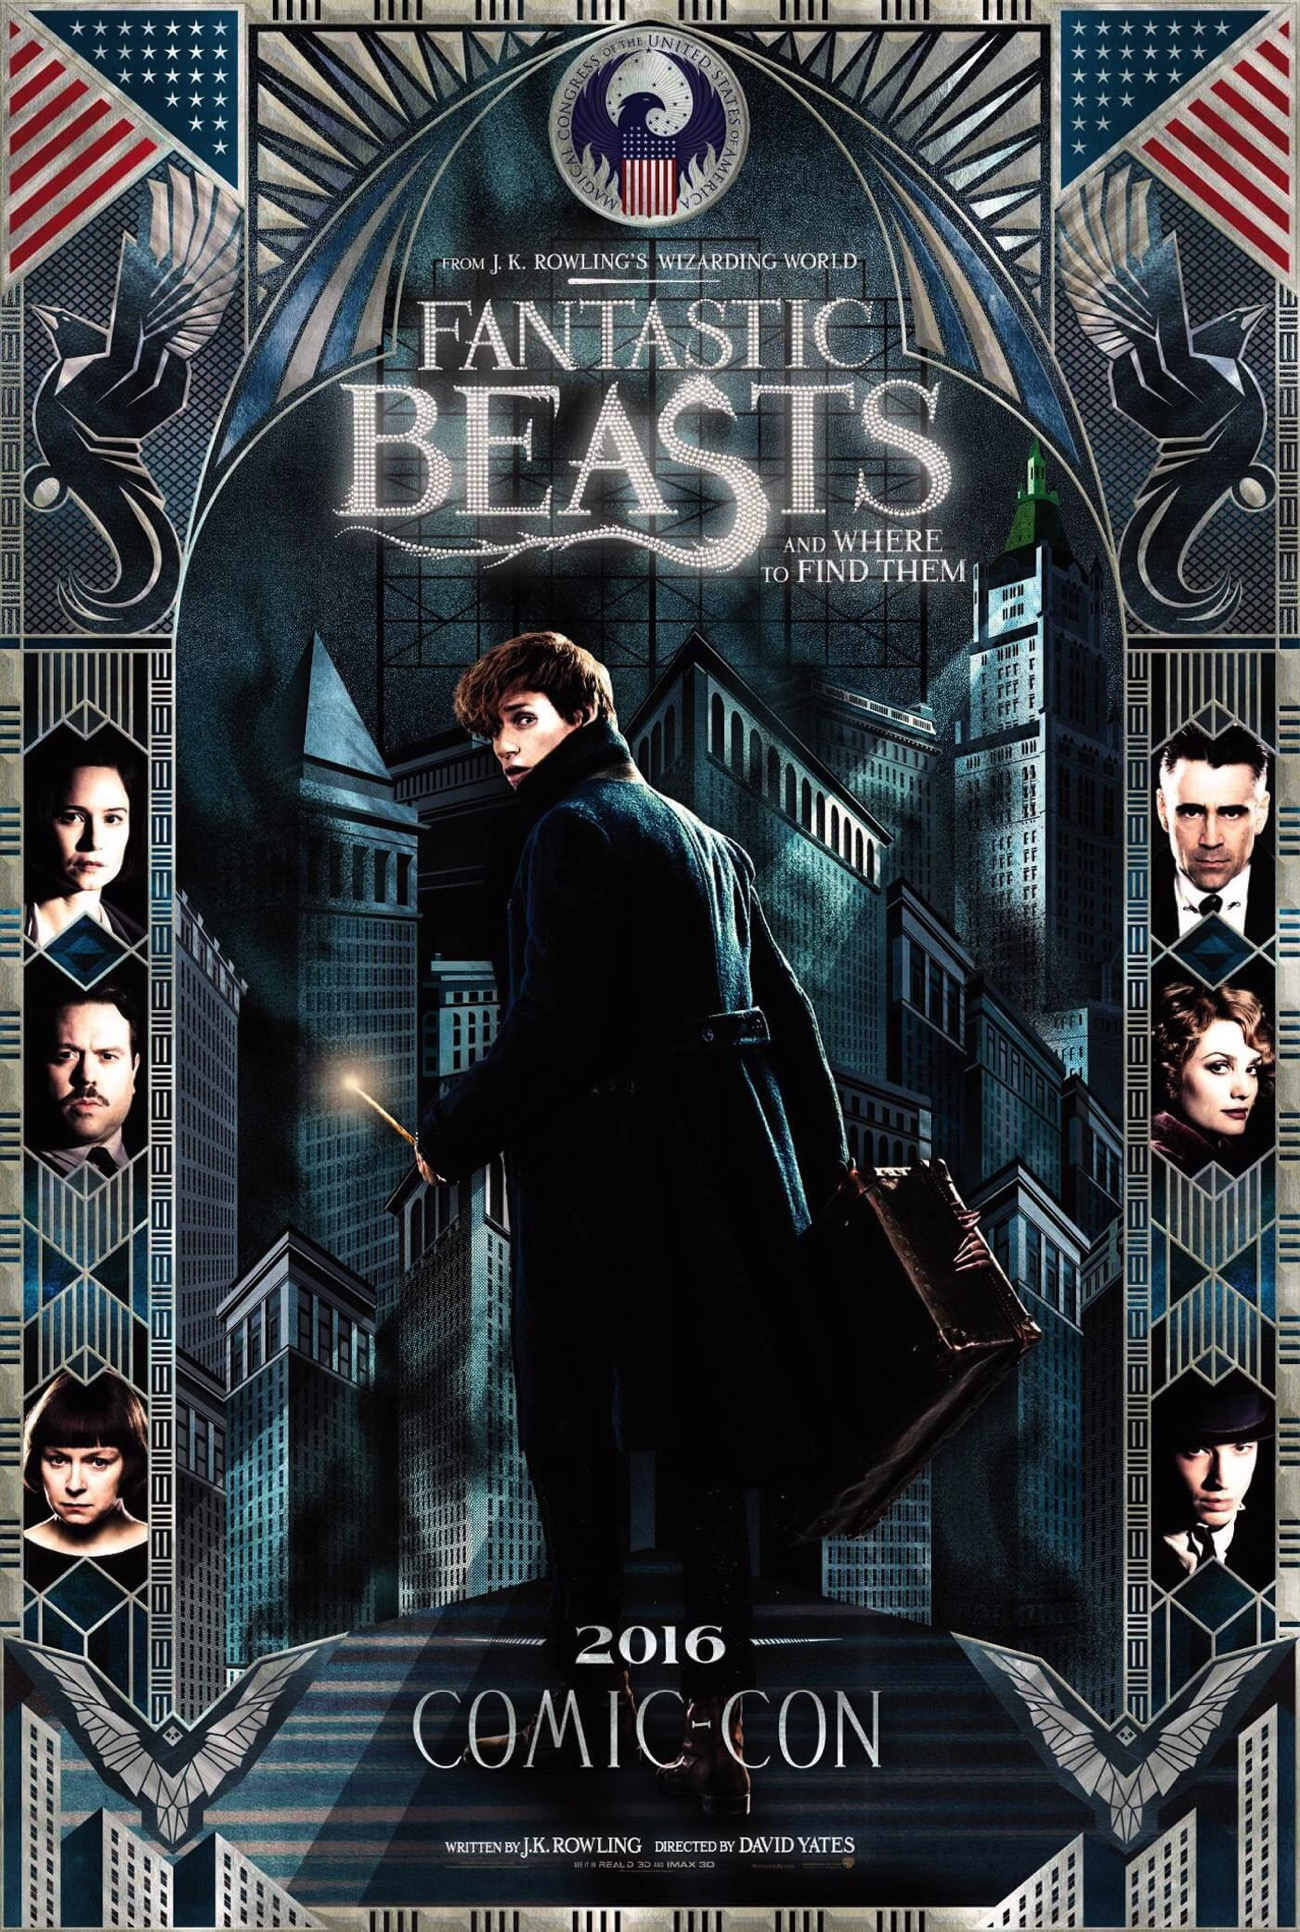 Fantastic beasts and where to find them comic con poster